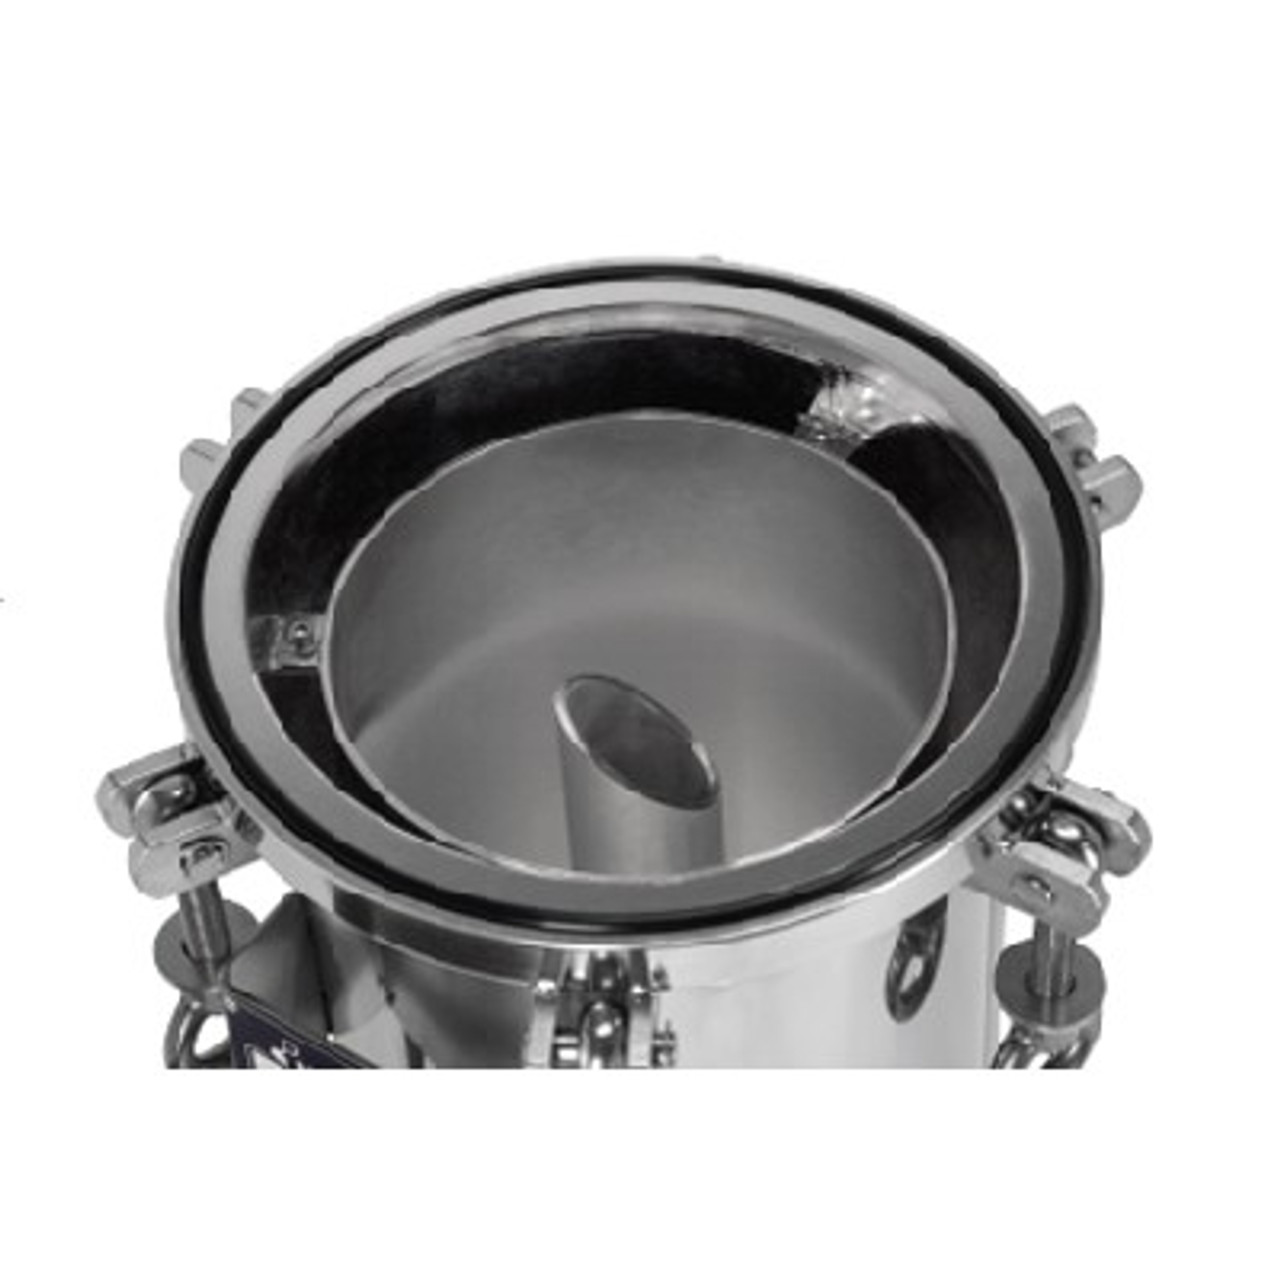 SCICLONE Series 304SS Housing with Solid Separation before Jumbo Filter